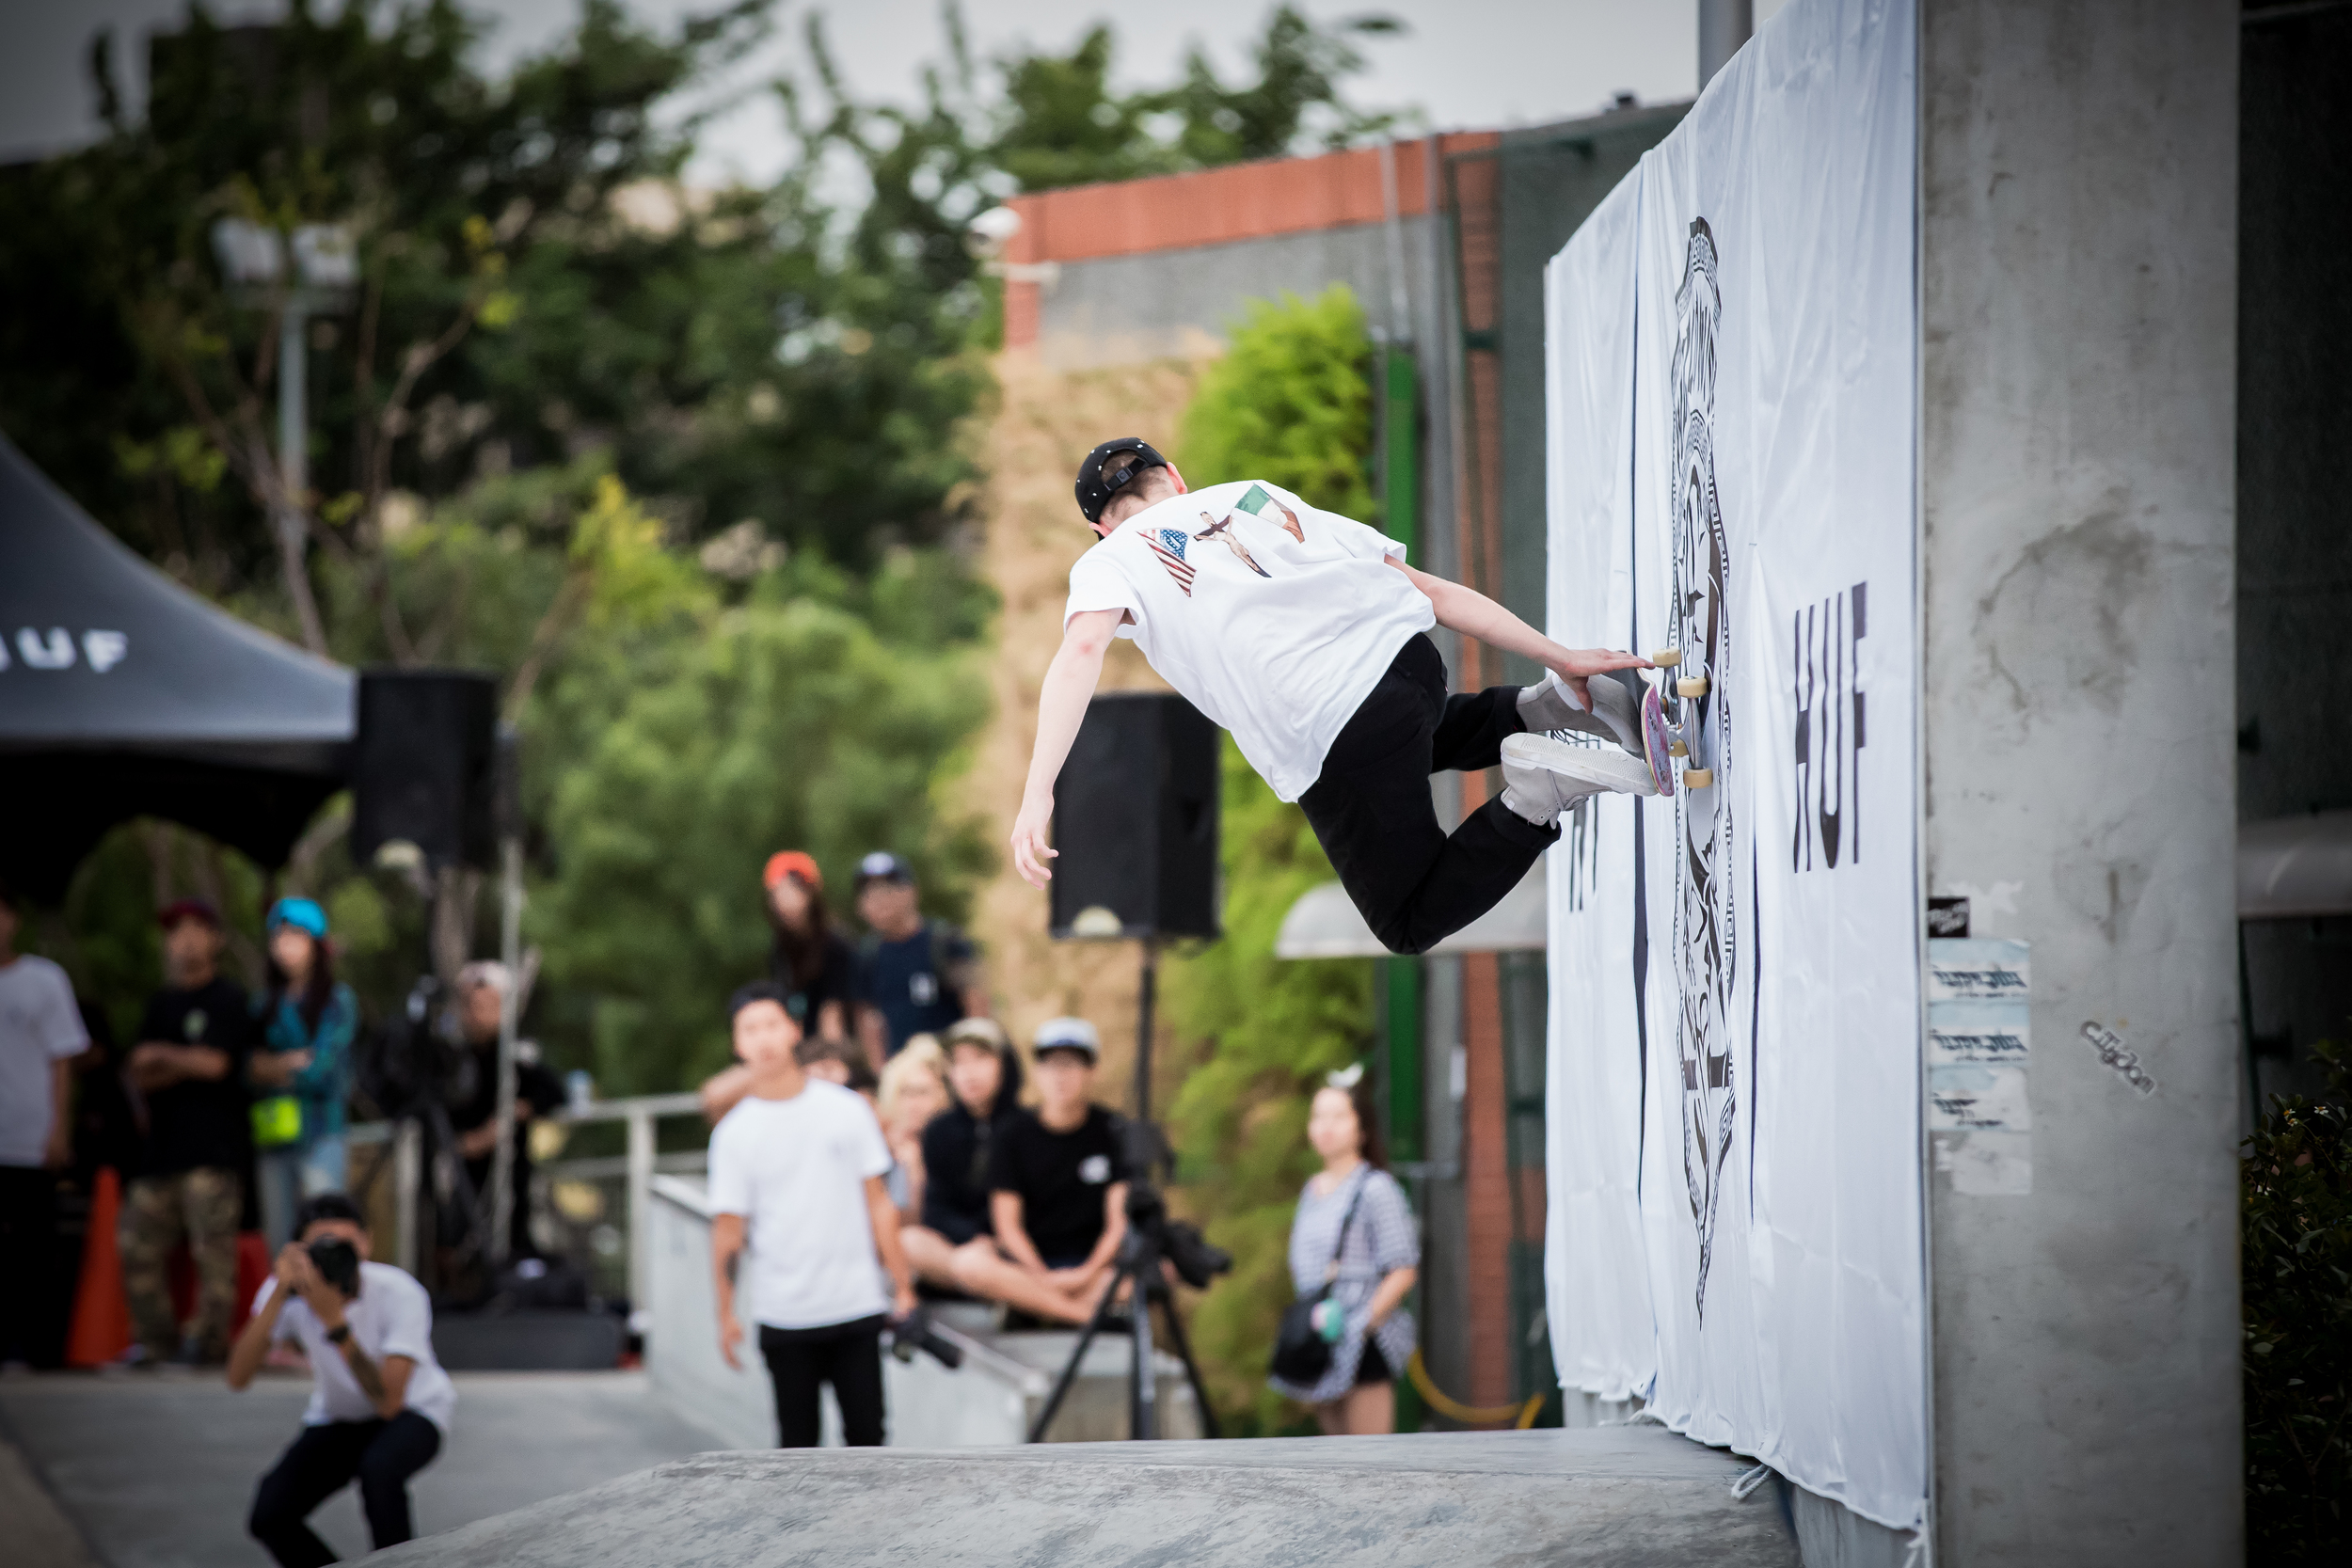 Kevin Terpening performing a wall slide